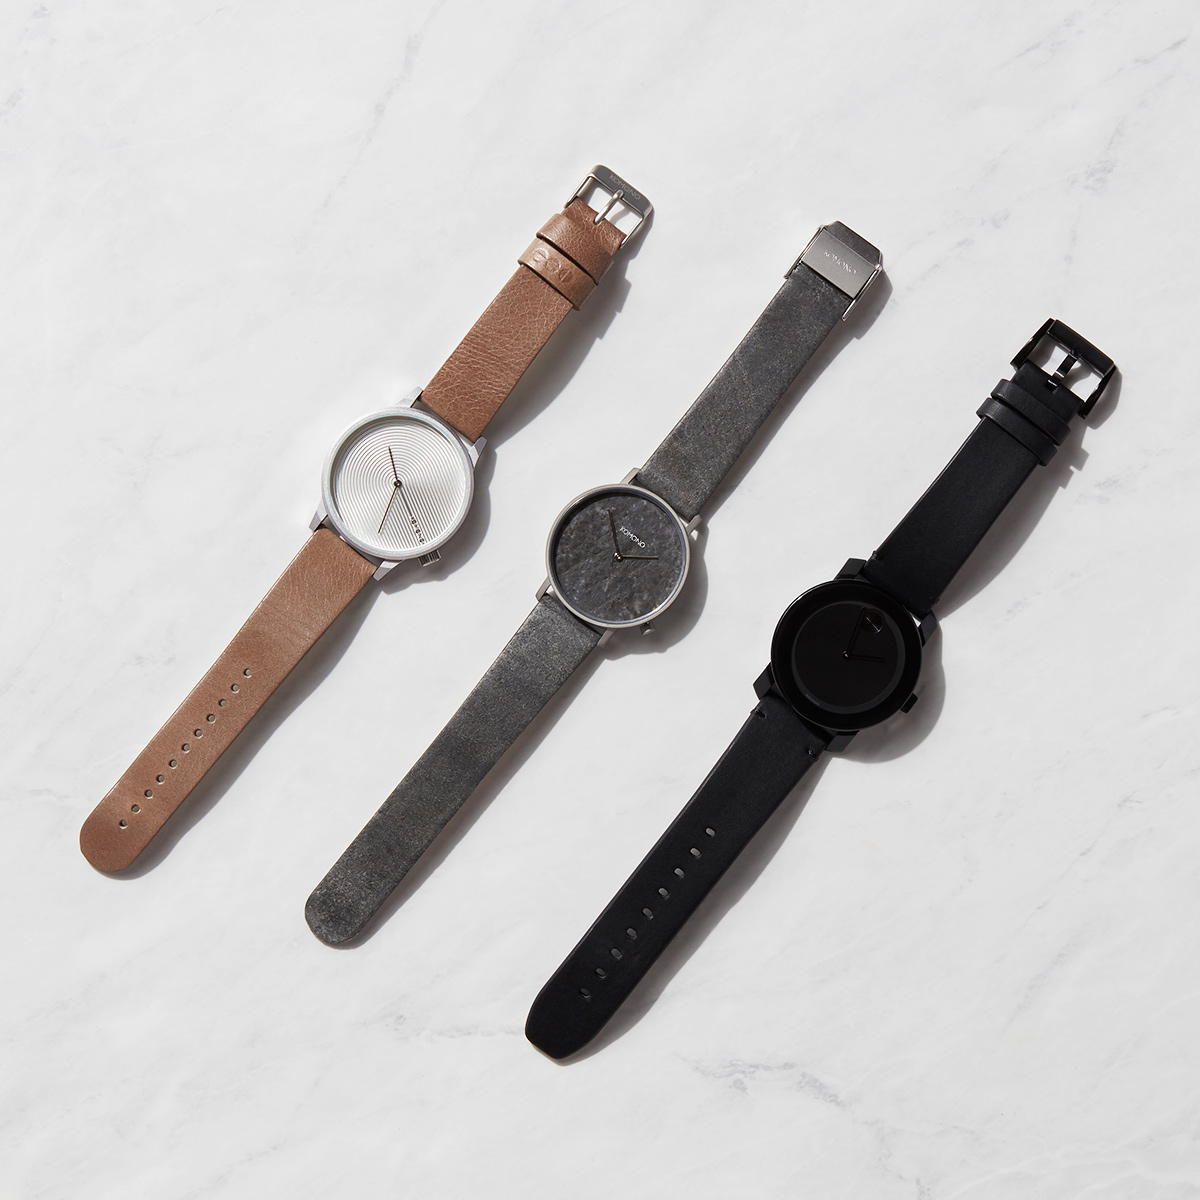 Three neutral colored watches organized in a diagonal composition laid flat on a marble background.